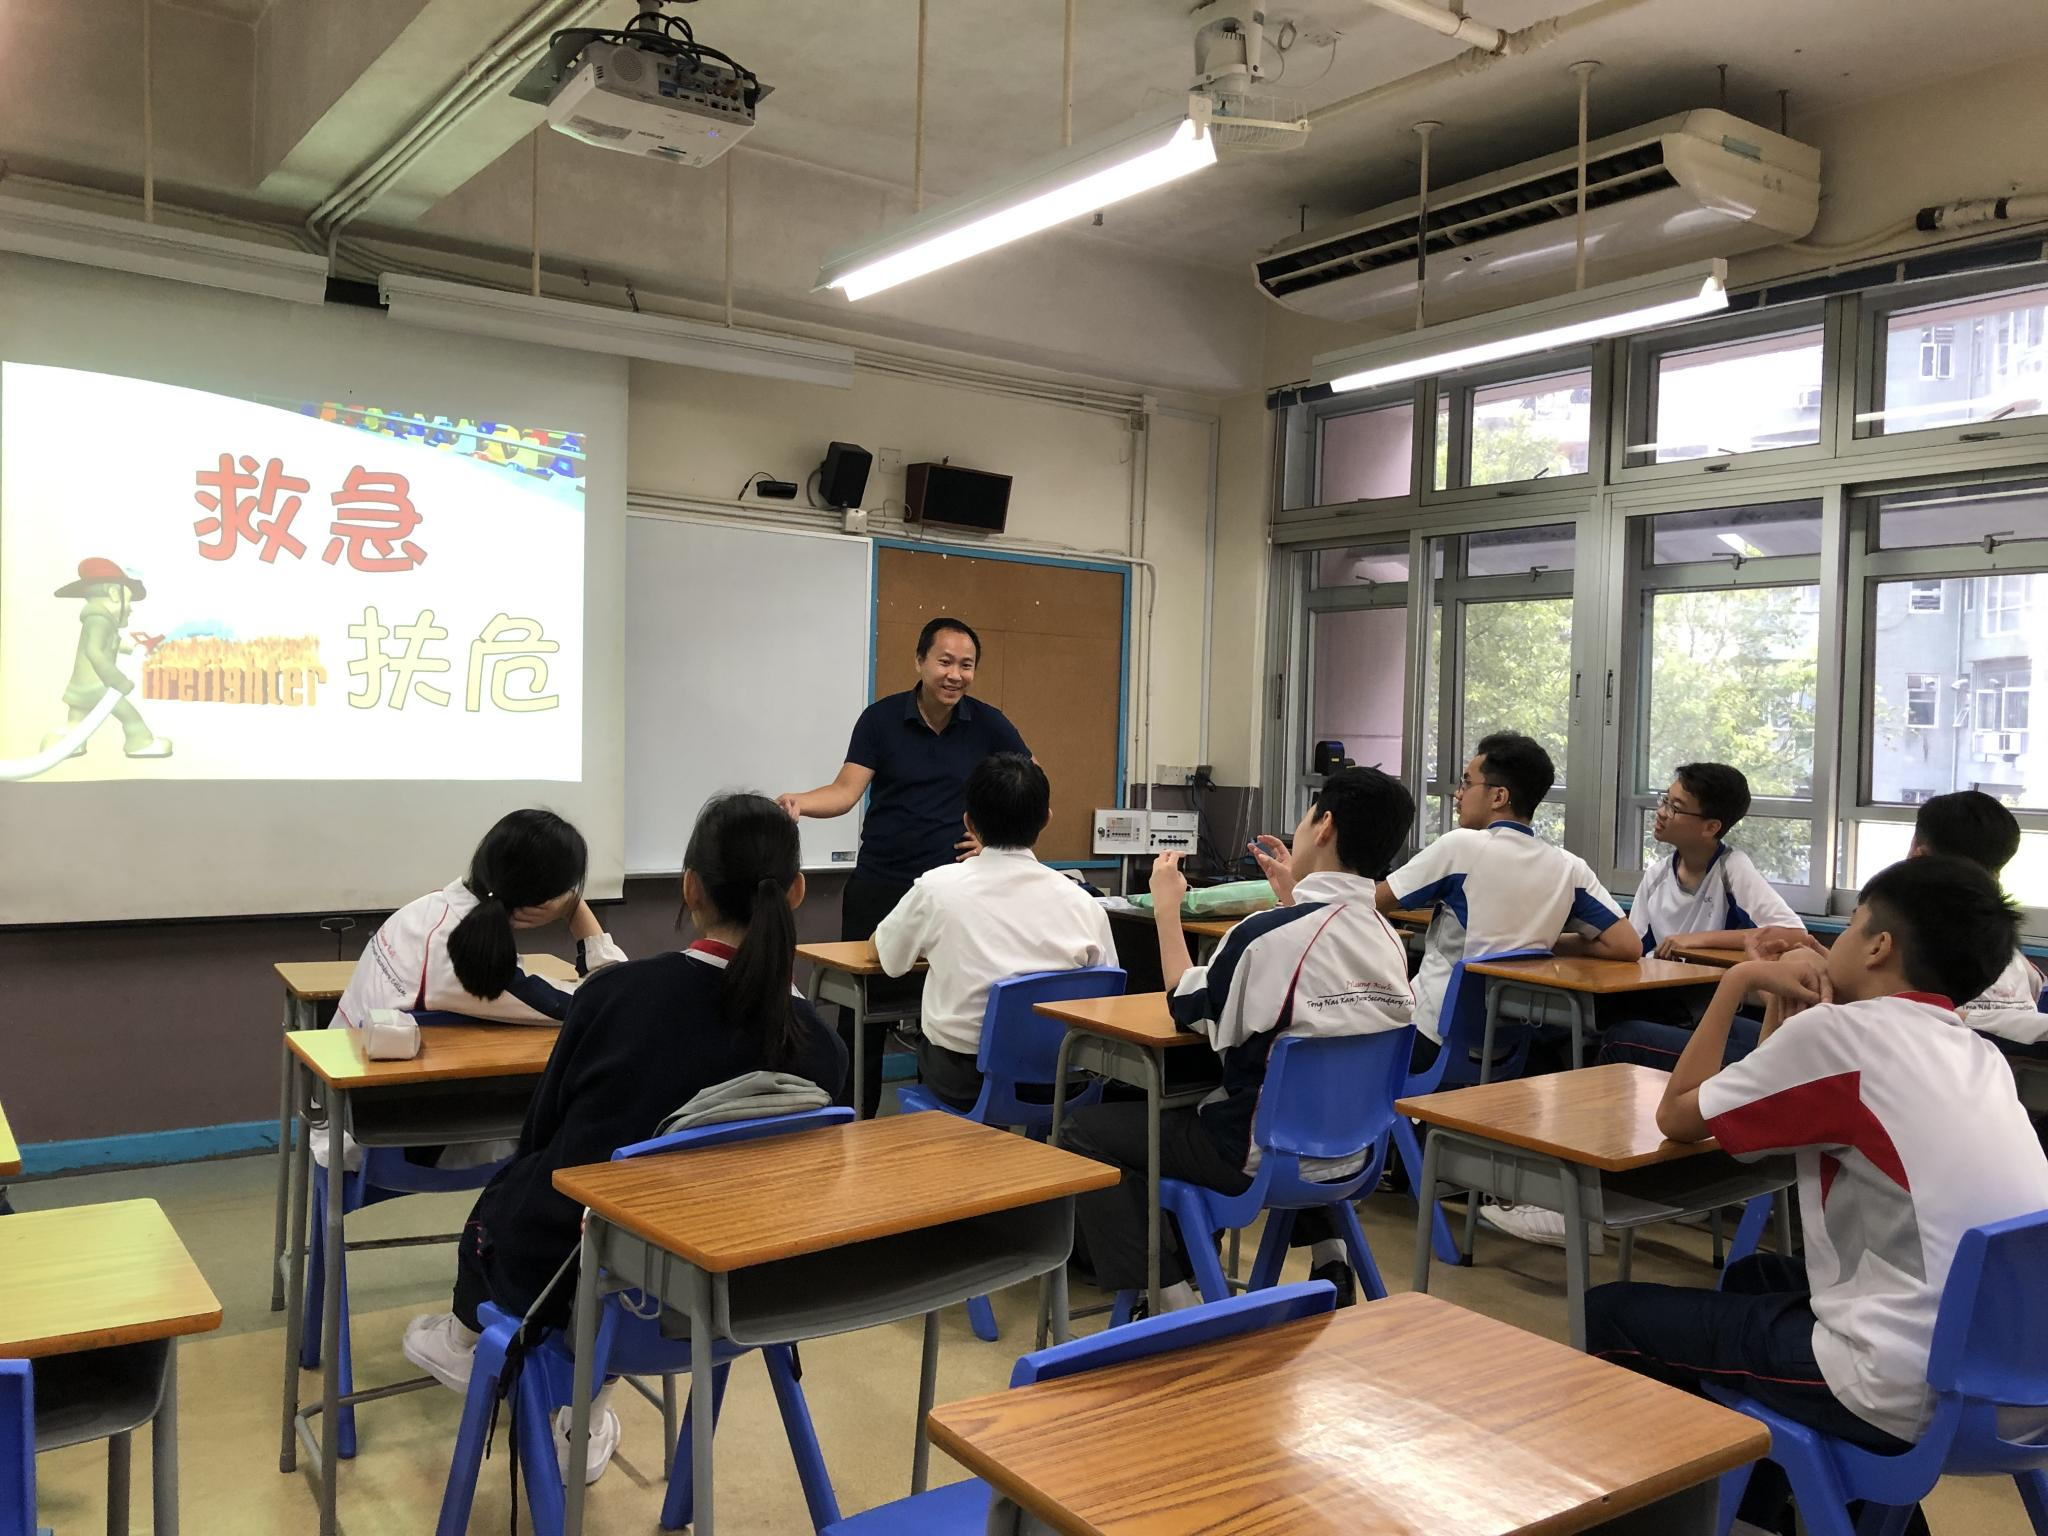 Students were listening to the tutor's introduction about a fireman.